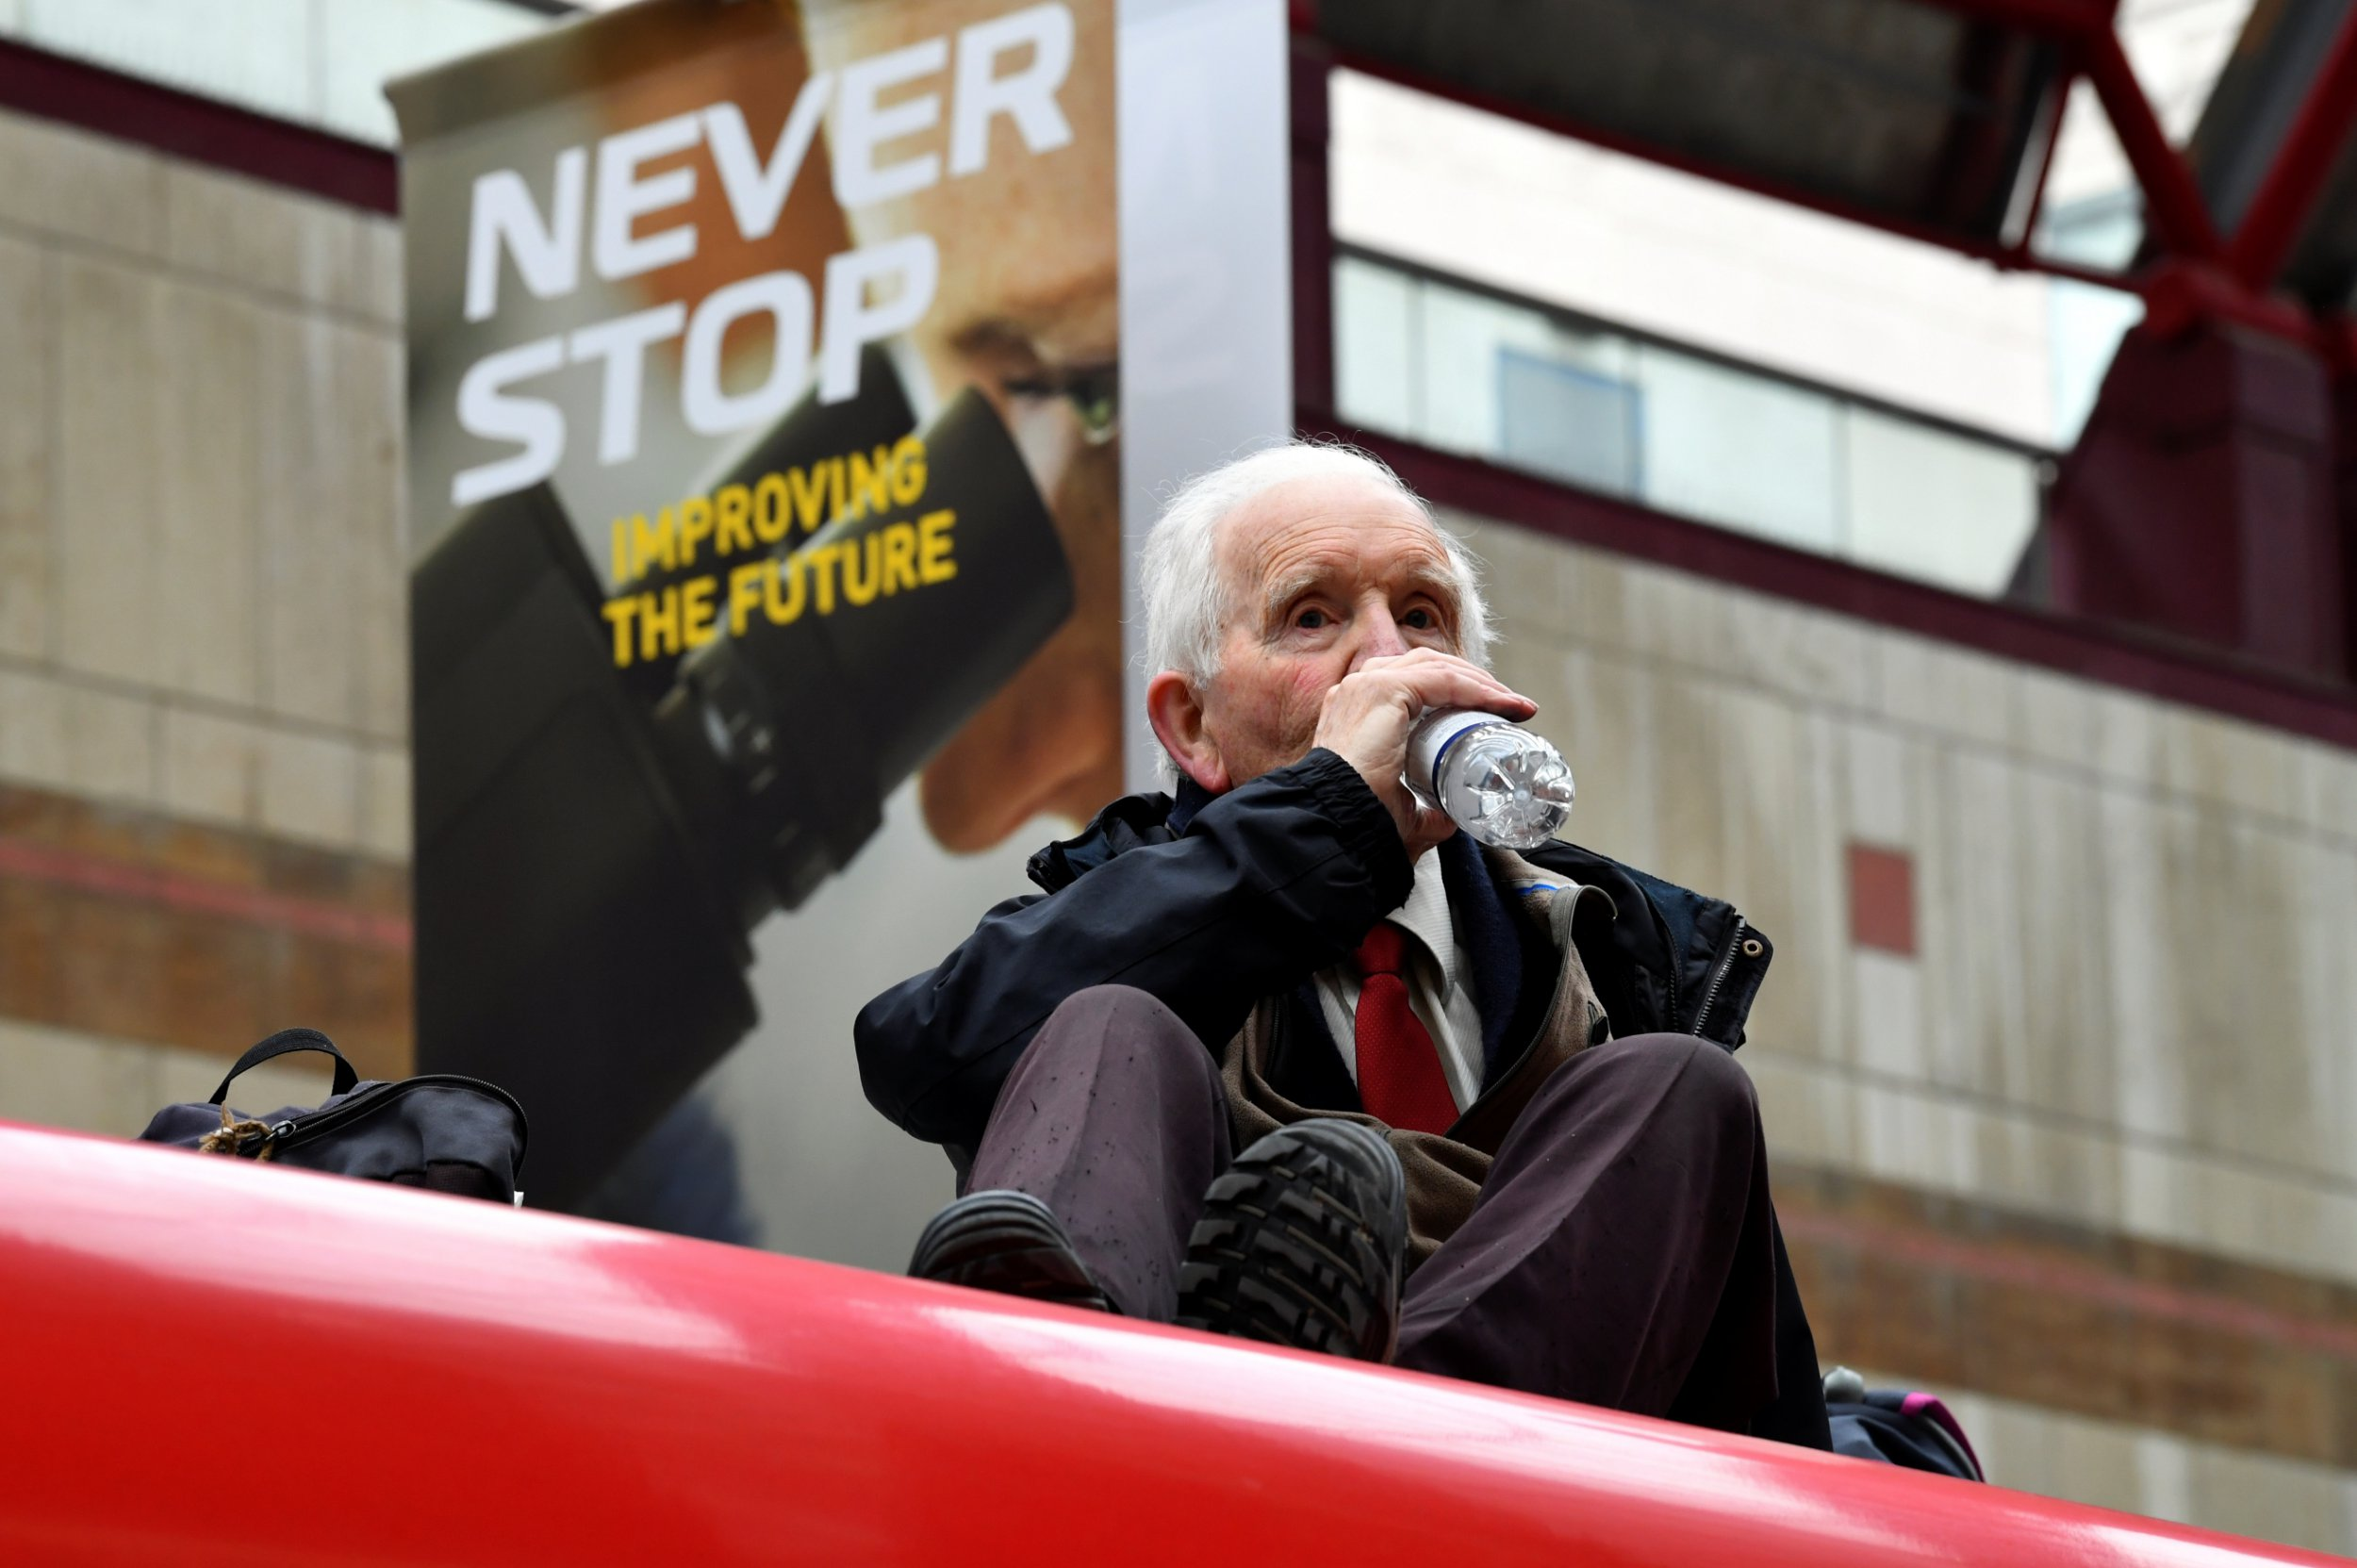 Phil Kingston, 83, sits on top of a DLR train as demonstrators block traffic at Canary Wharf Station during the Extinction Rebellion protest in London, Britain April 25, 2019. REUTERS/Dylan Martinez